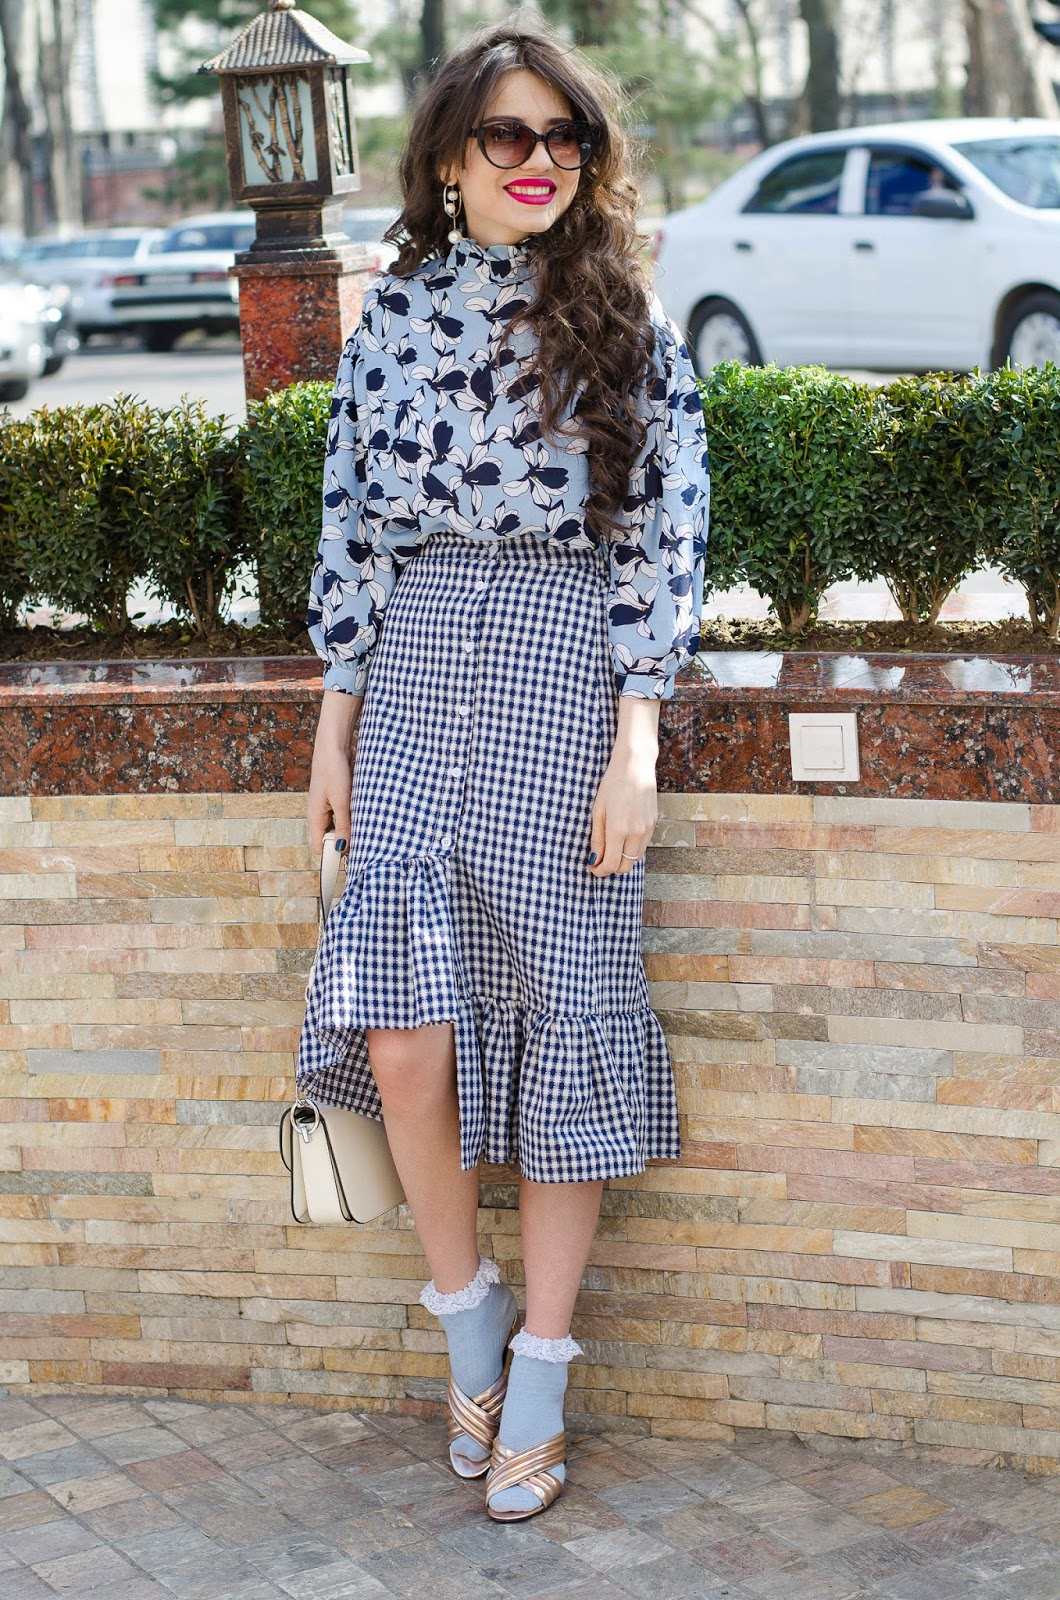 fashion blogger diyorasnotes diyora beta mix prints ruffles checked skirt mules asos socks and heels